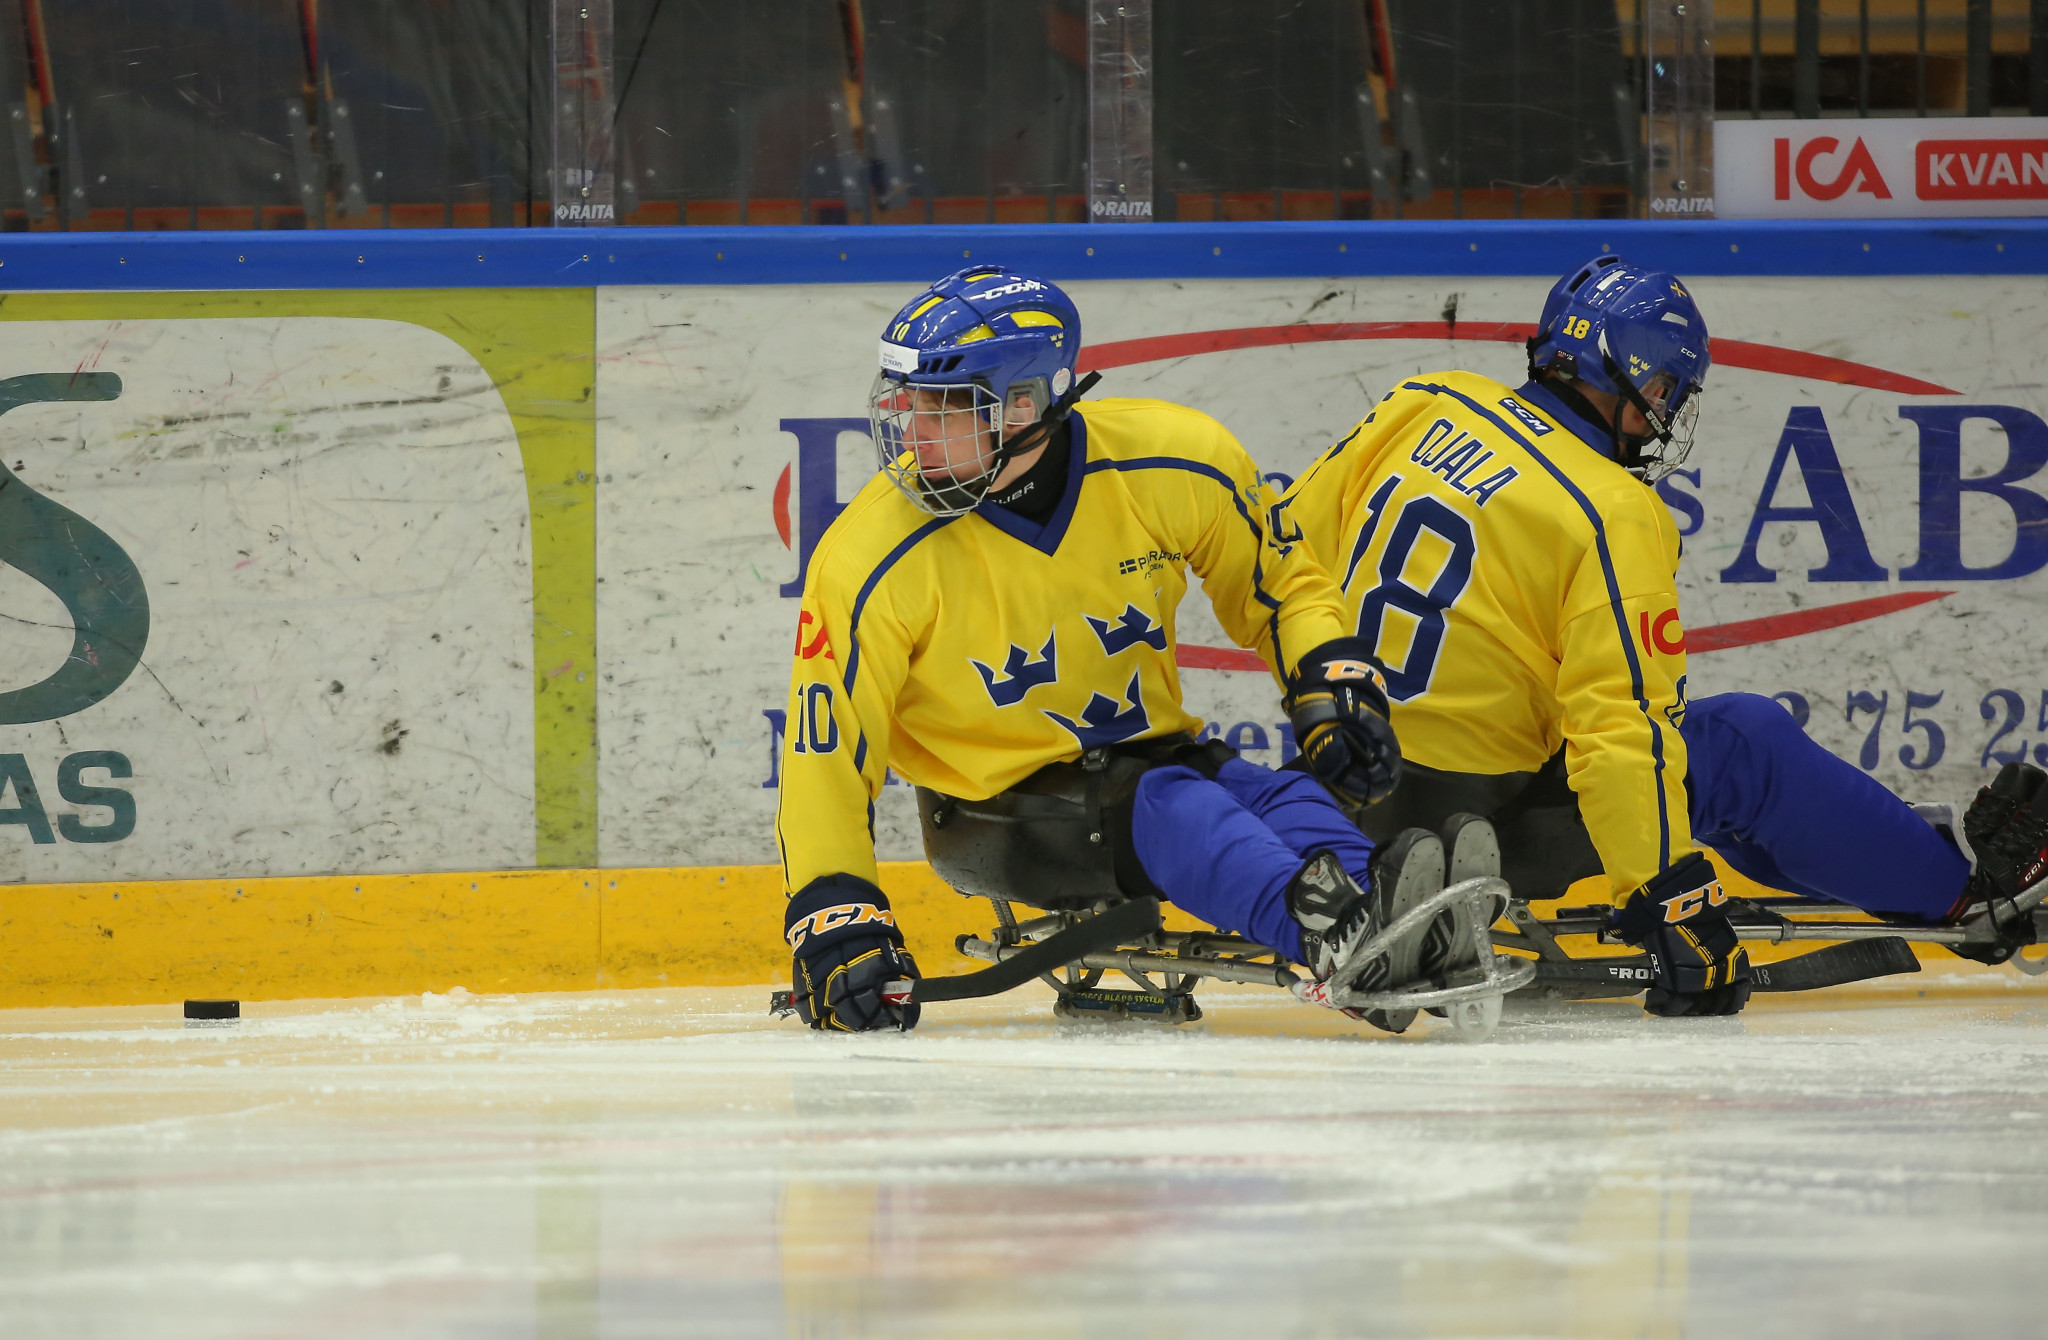 Sweden suffered a second defeat in as many days today ©IPC